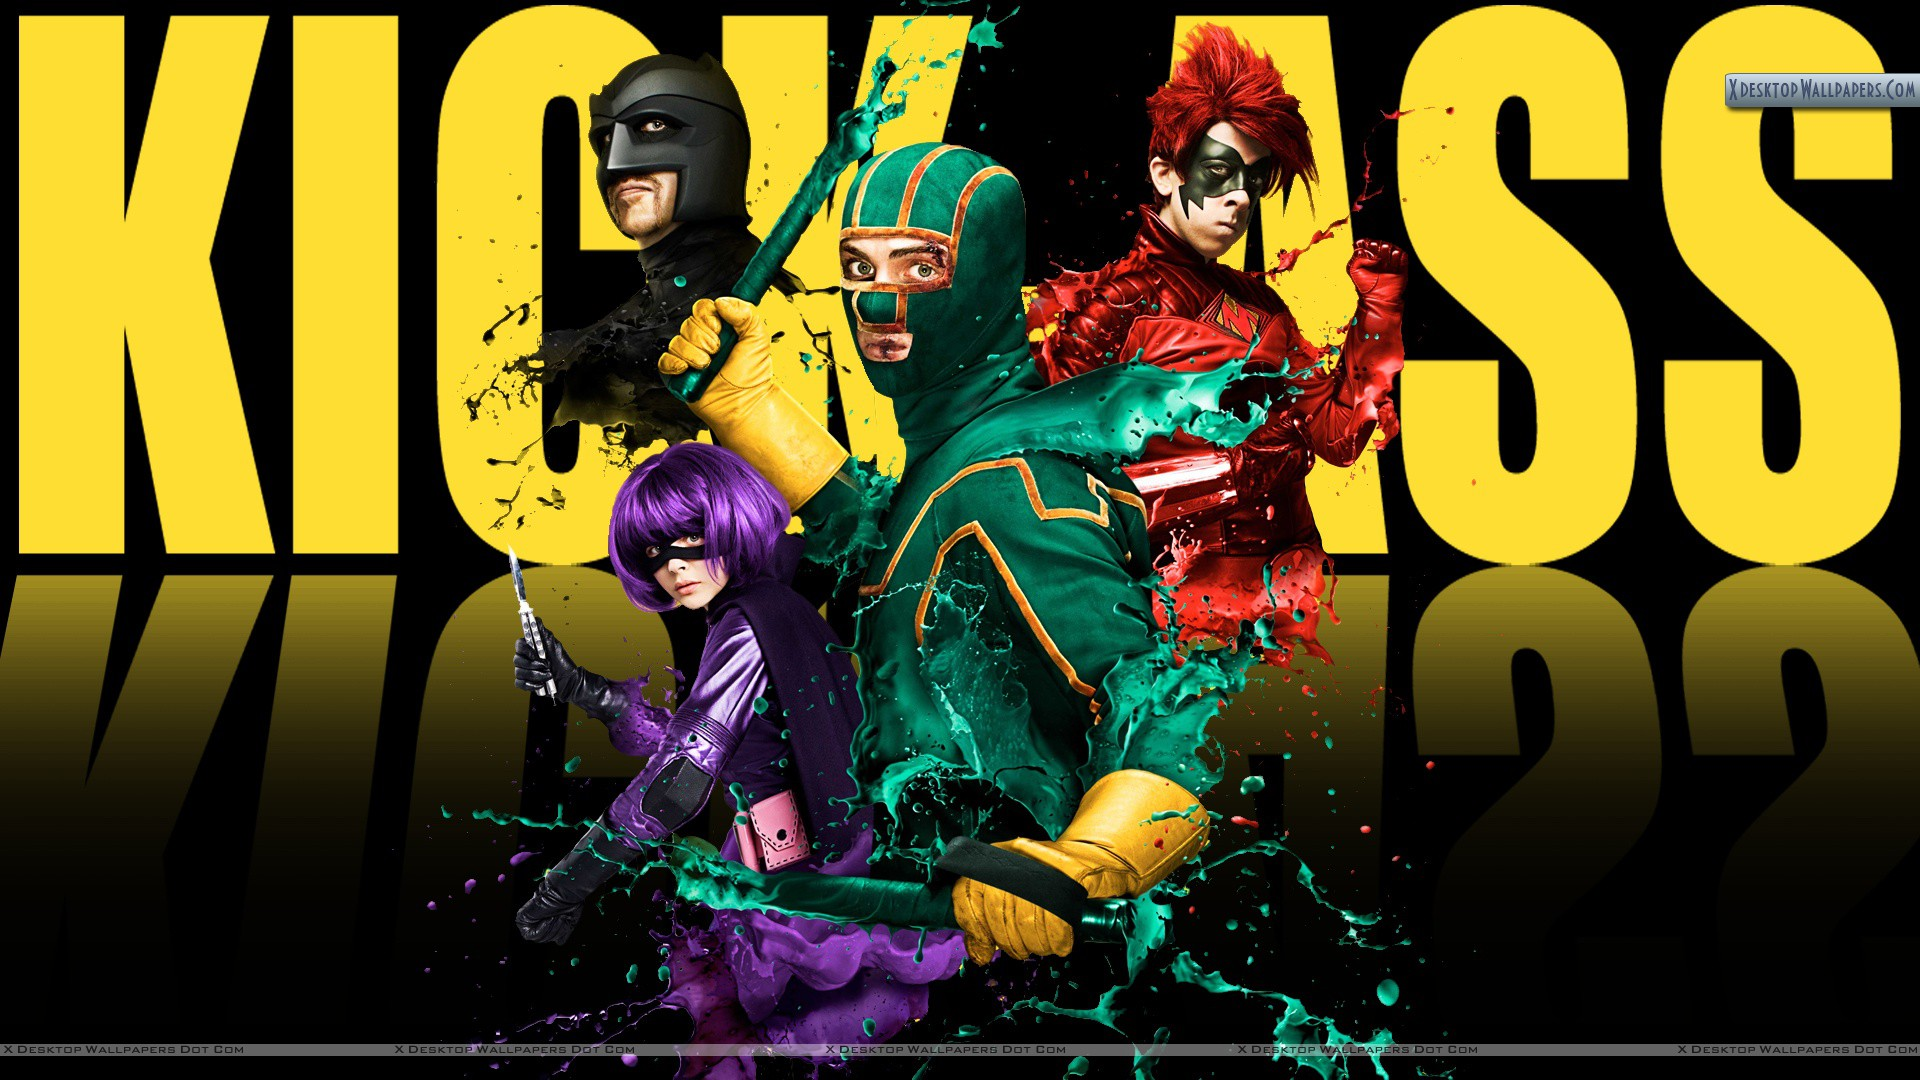 http://xdesktopwallpapers.com/wp-content/uploads/2011/10/Kick-Ass-Movie-Poster.jpg